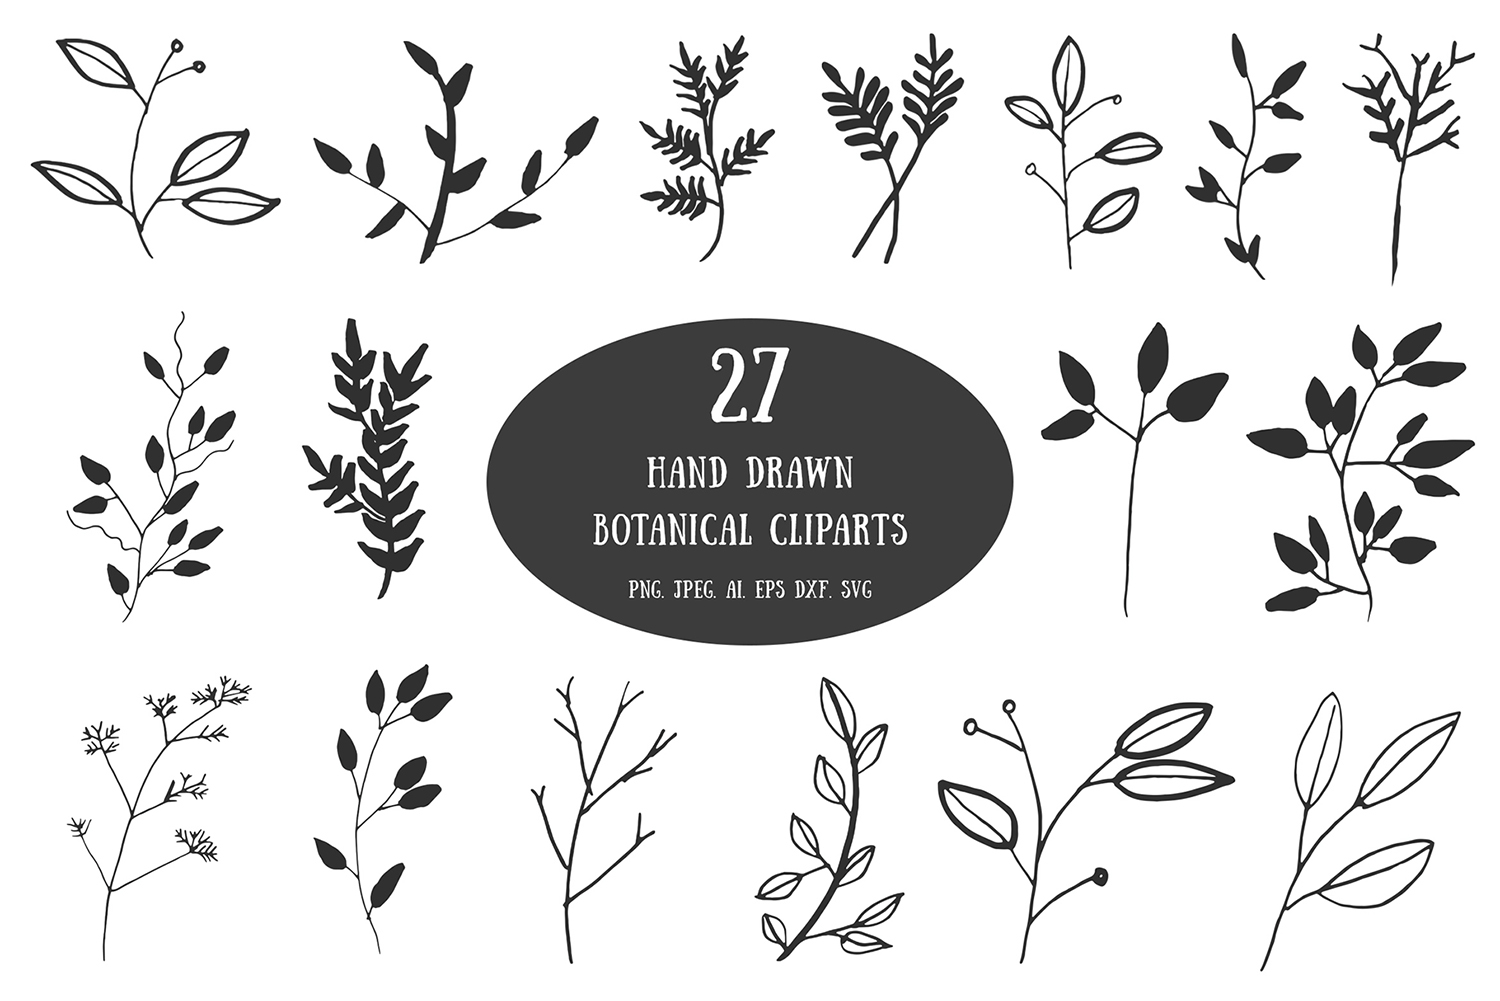 Newness of life clipart black and white svg black and white library 20+ Handdrawn Botanical Cliparts svg black and white library